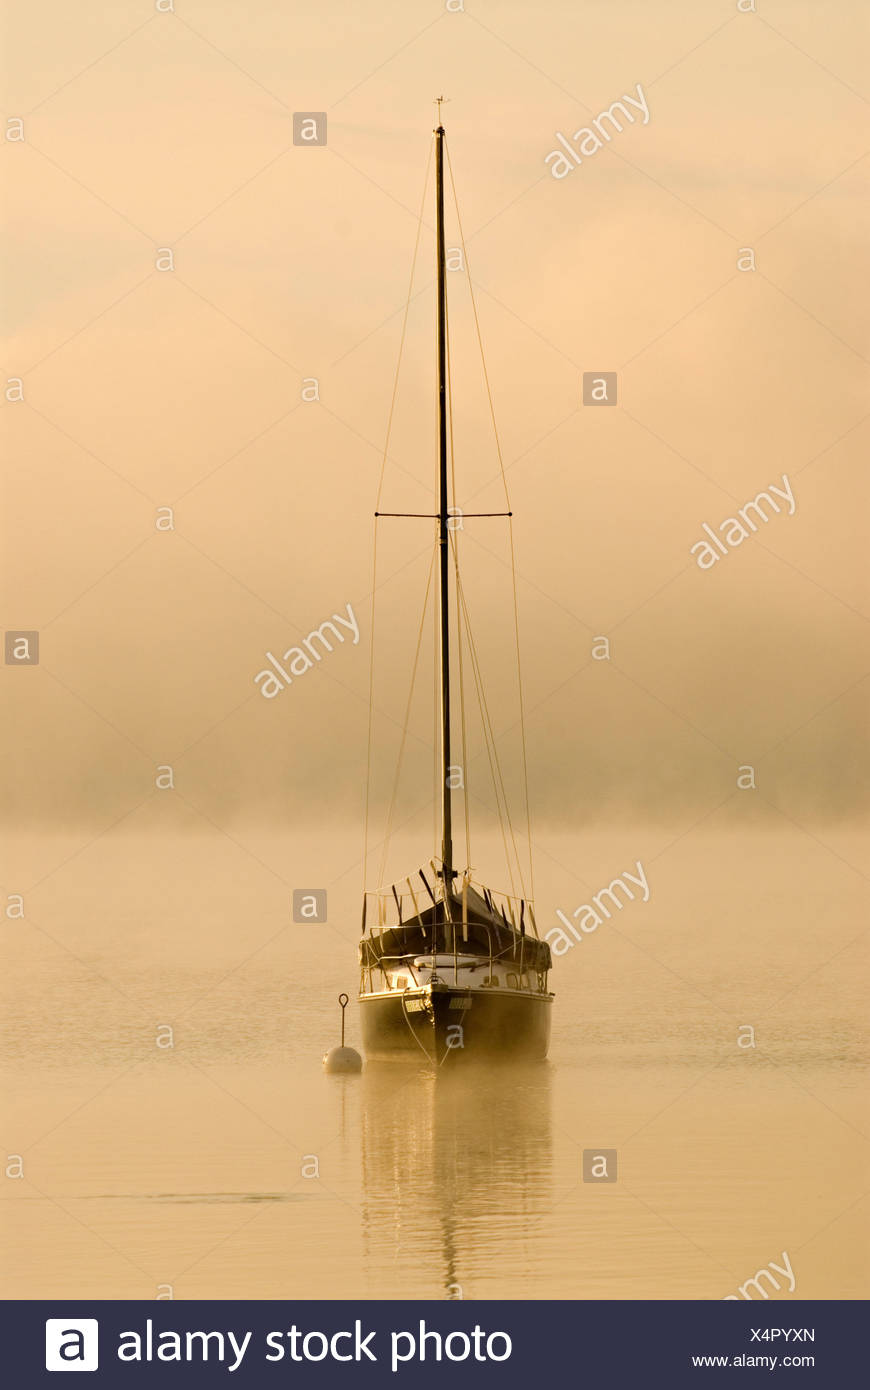 Sailing boat and fog at the southern end of Ammersee lake in Diessen, Bavaria, Germany, Europe Stock Photo